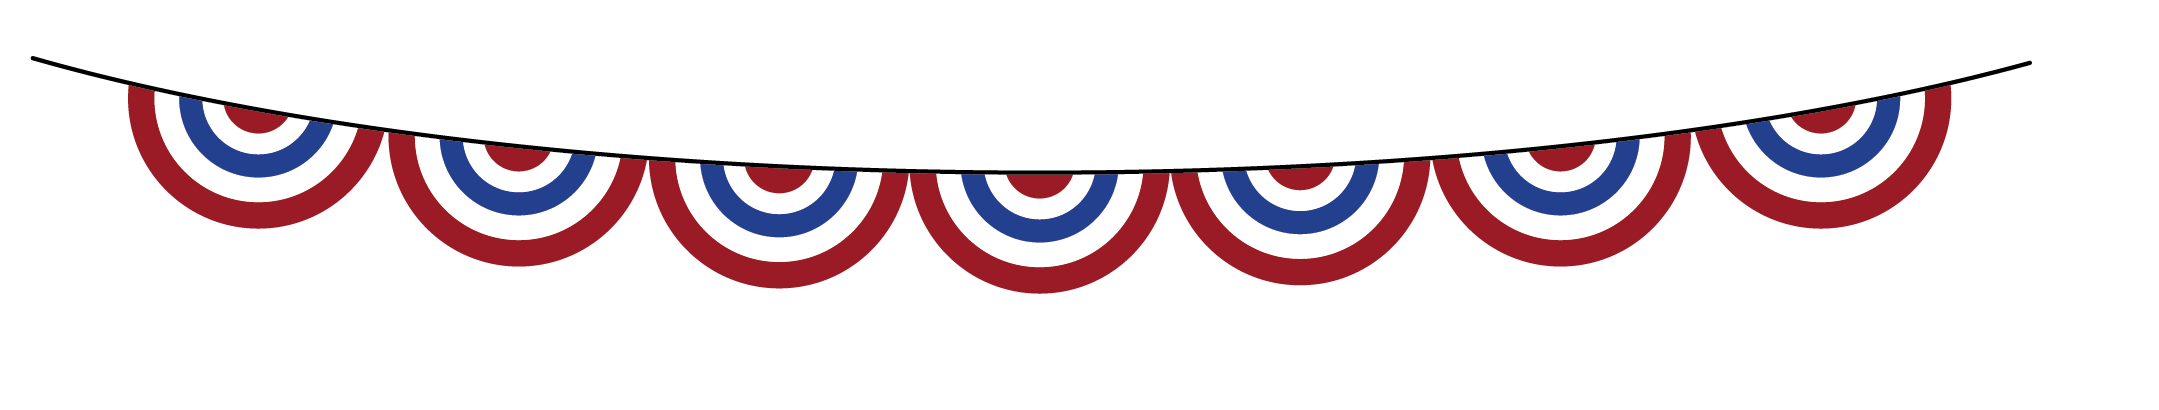 2159x410 4th Of July Clip Art, 3d Animated Images For Free